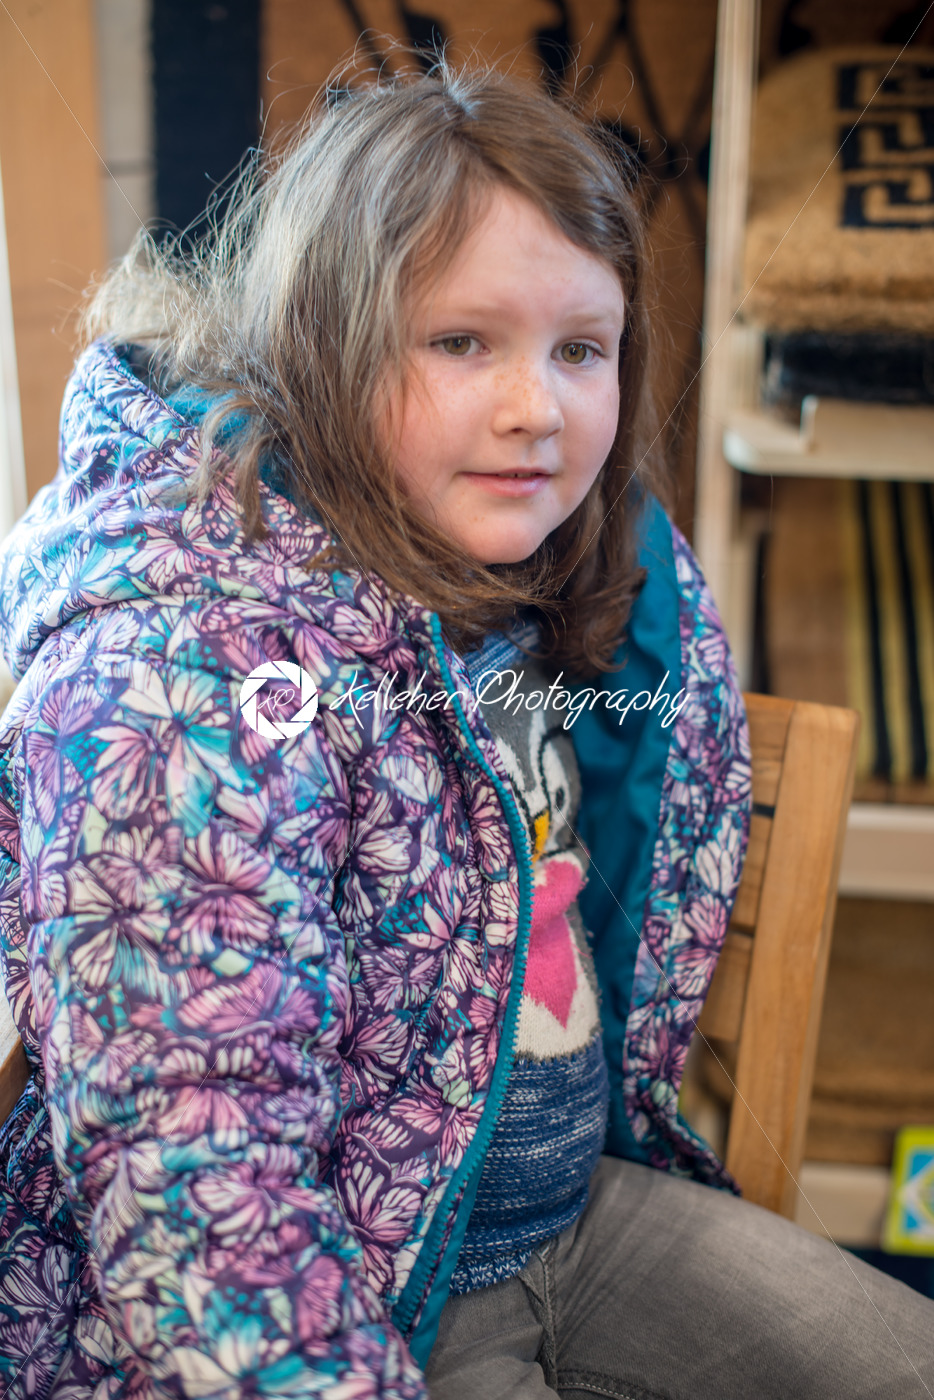 Pretty young girl sits in chair all dressed up for Easter holidays - Kelleher Photography Store